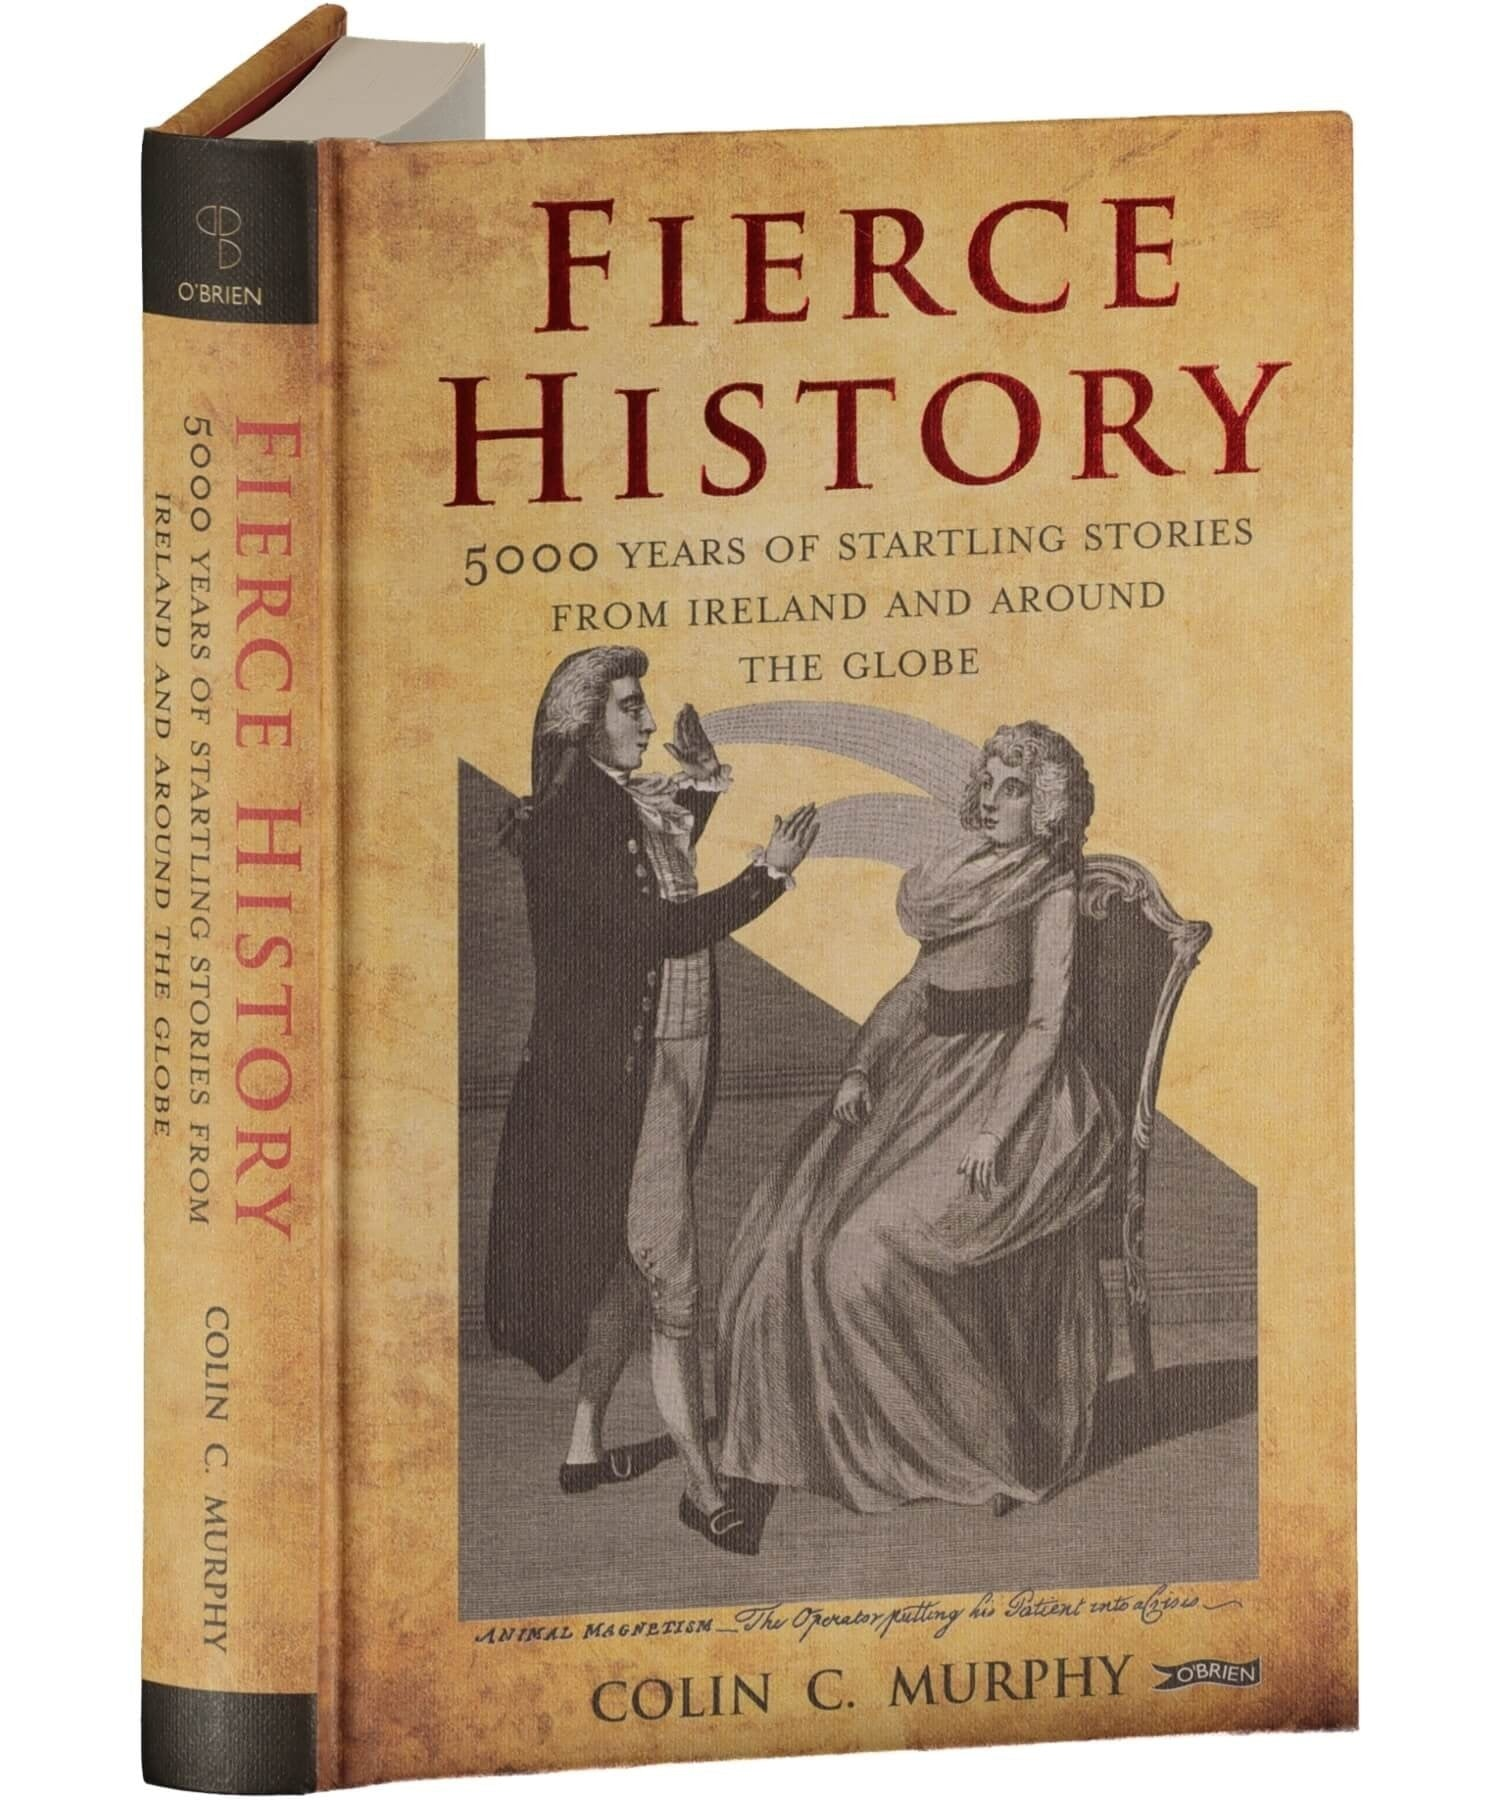 Fierce History The OBrien Press Books